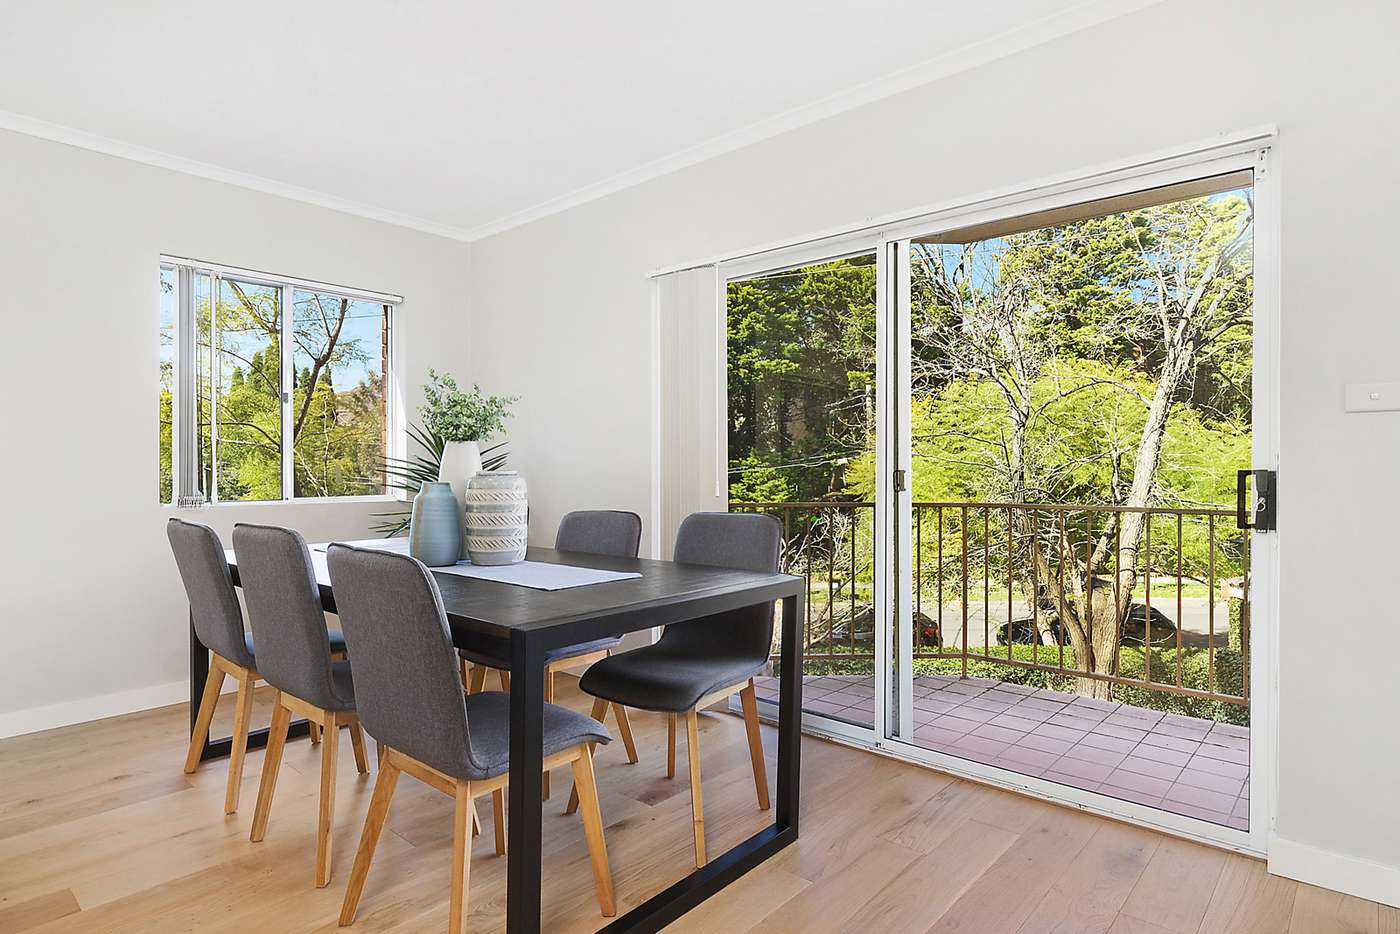 Fifth view of Homely apartment listing, 18/5-7 Water Street, Hornsby NSW 2077